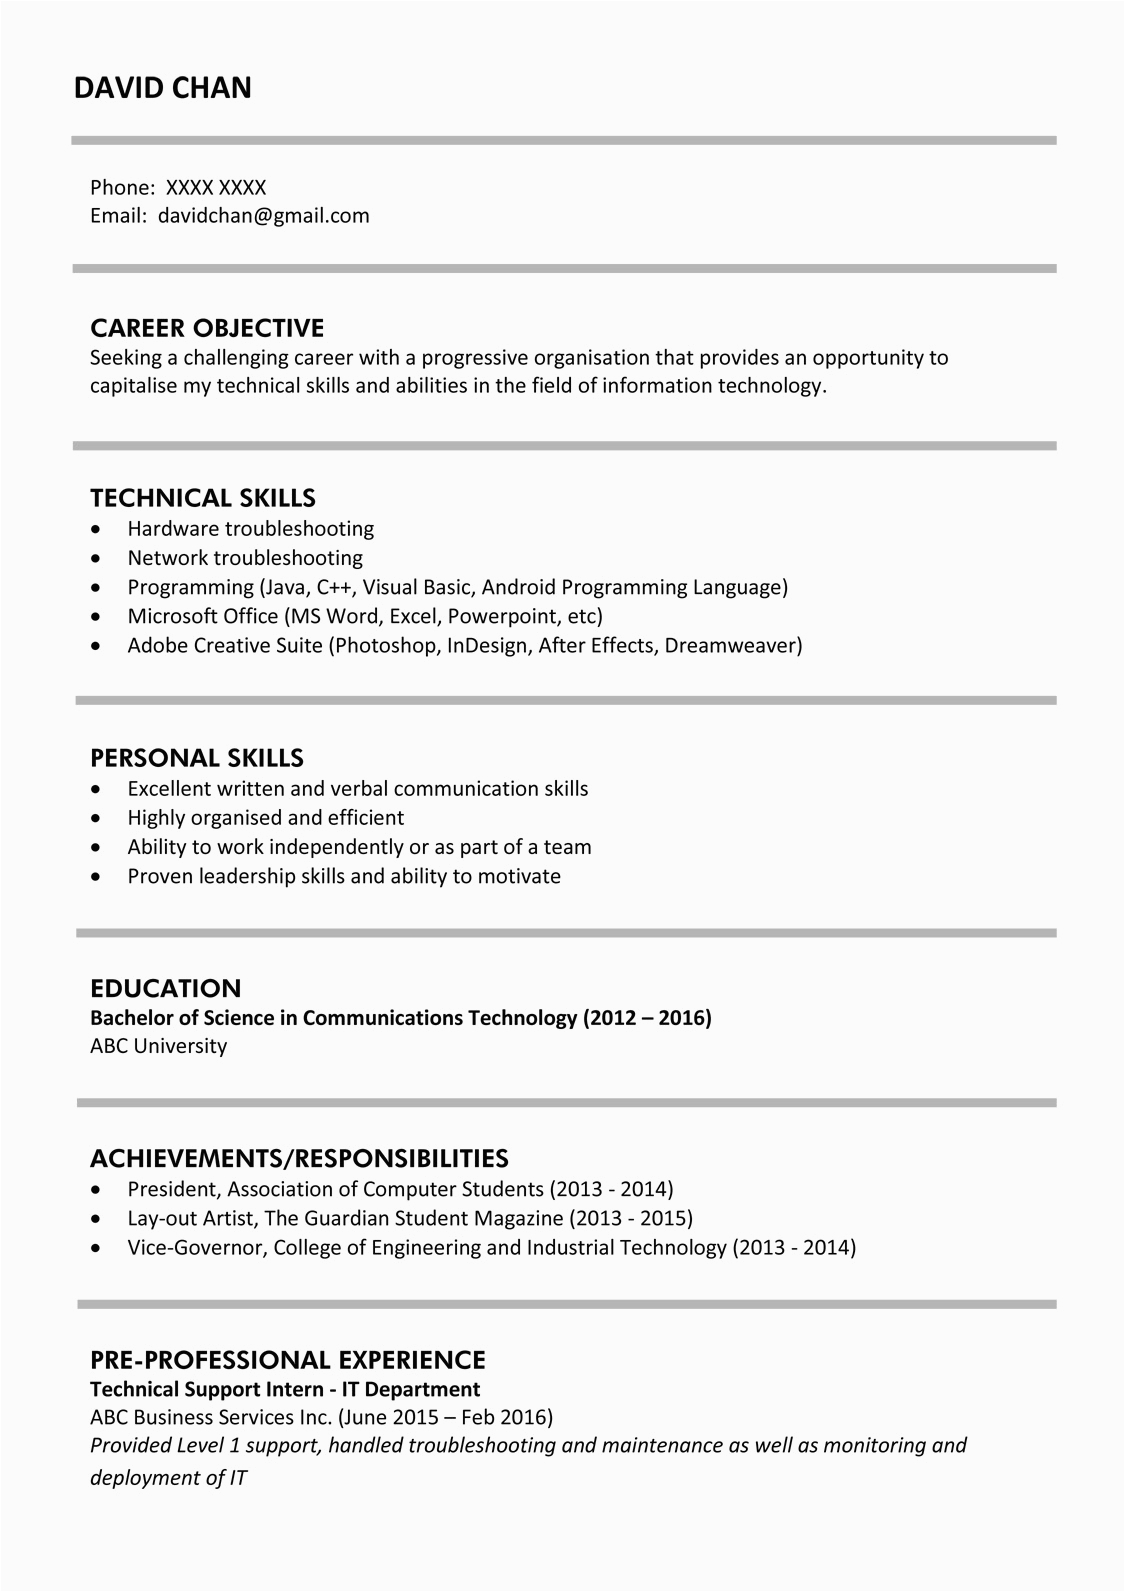 resume example for fresh graduate without experience